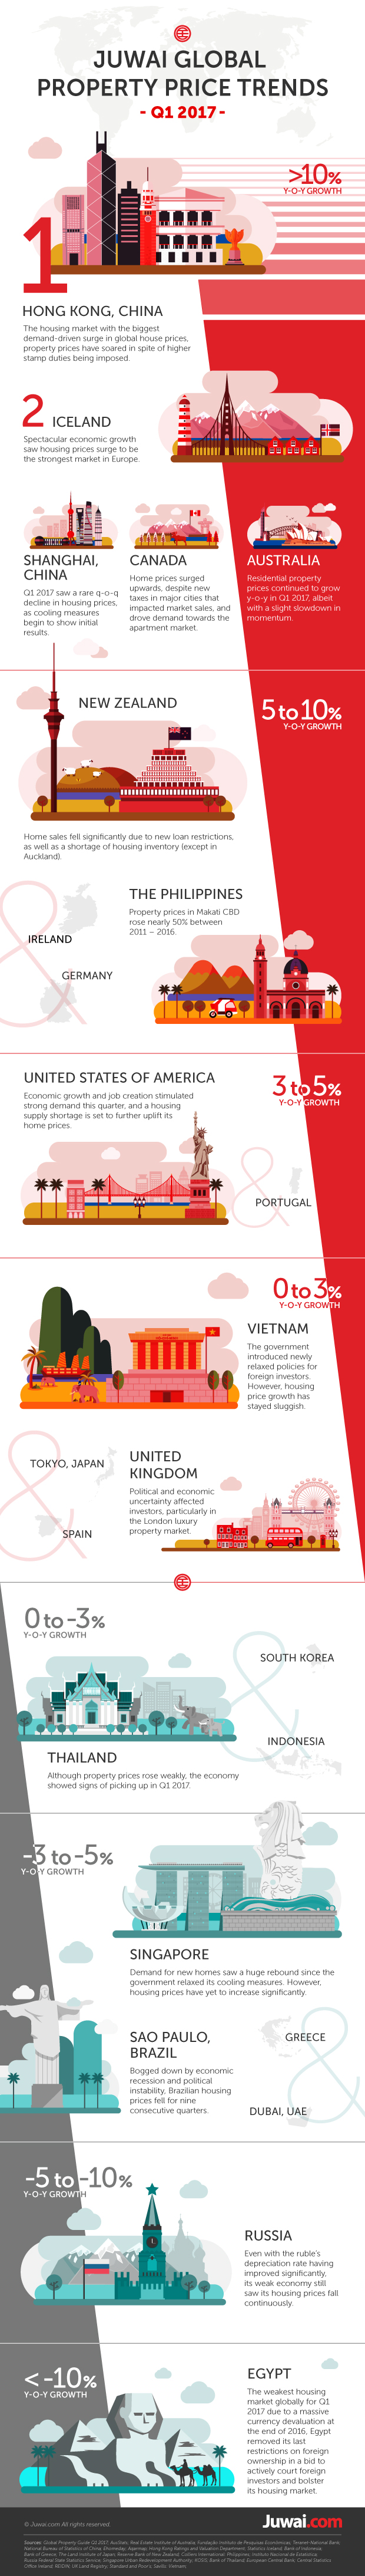 Juwai Global Property Price Trends Q1 2017 Infographic